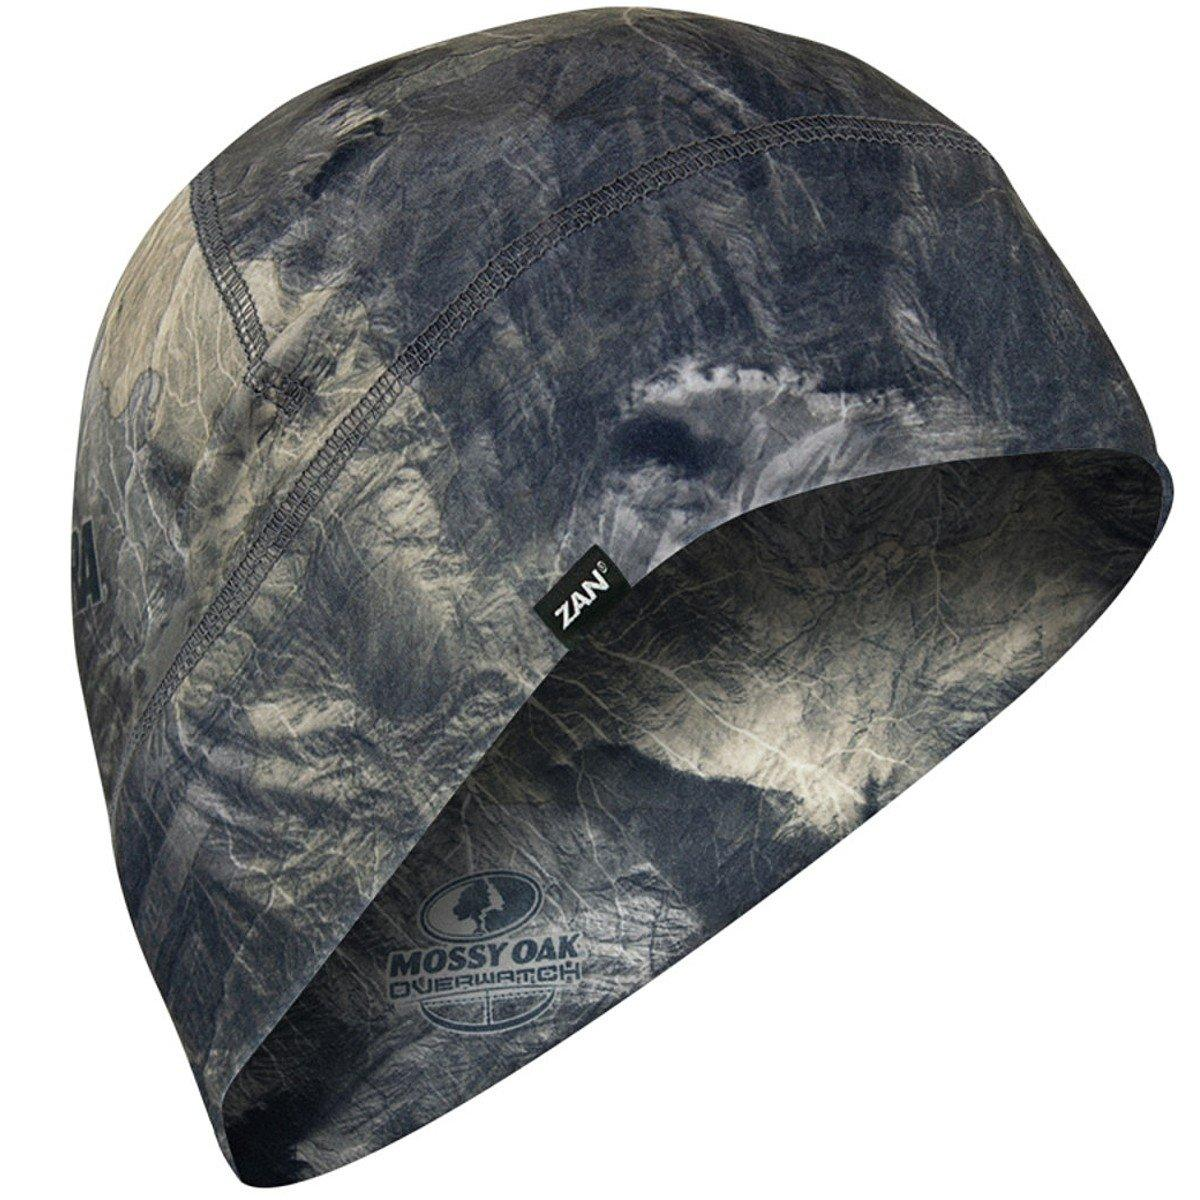 Zan Headgear® SportFlex™ Unisex Officially Licensed Mossy Oak® Overwatch® Beanie with 50+ UV Protection, Brushed Polyester/Elastane Ultra-Comfort Material